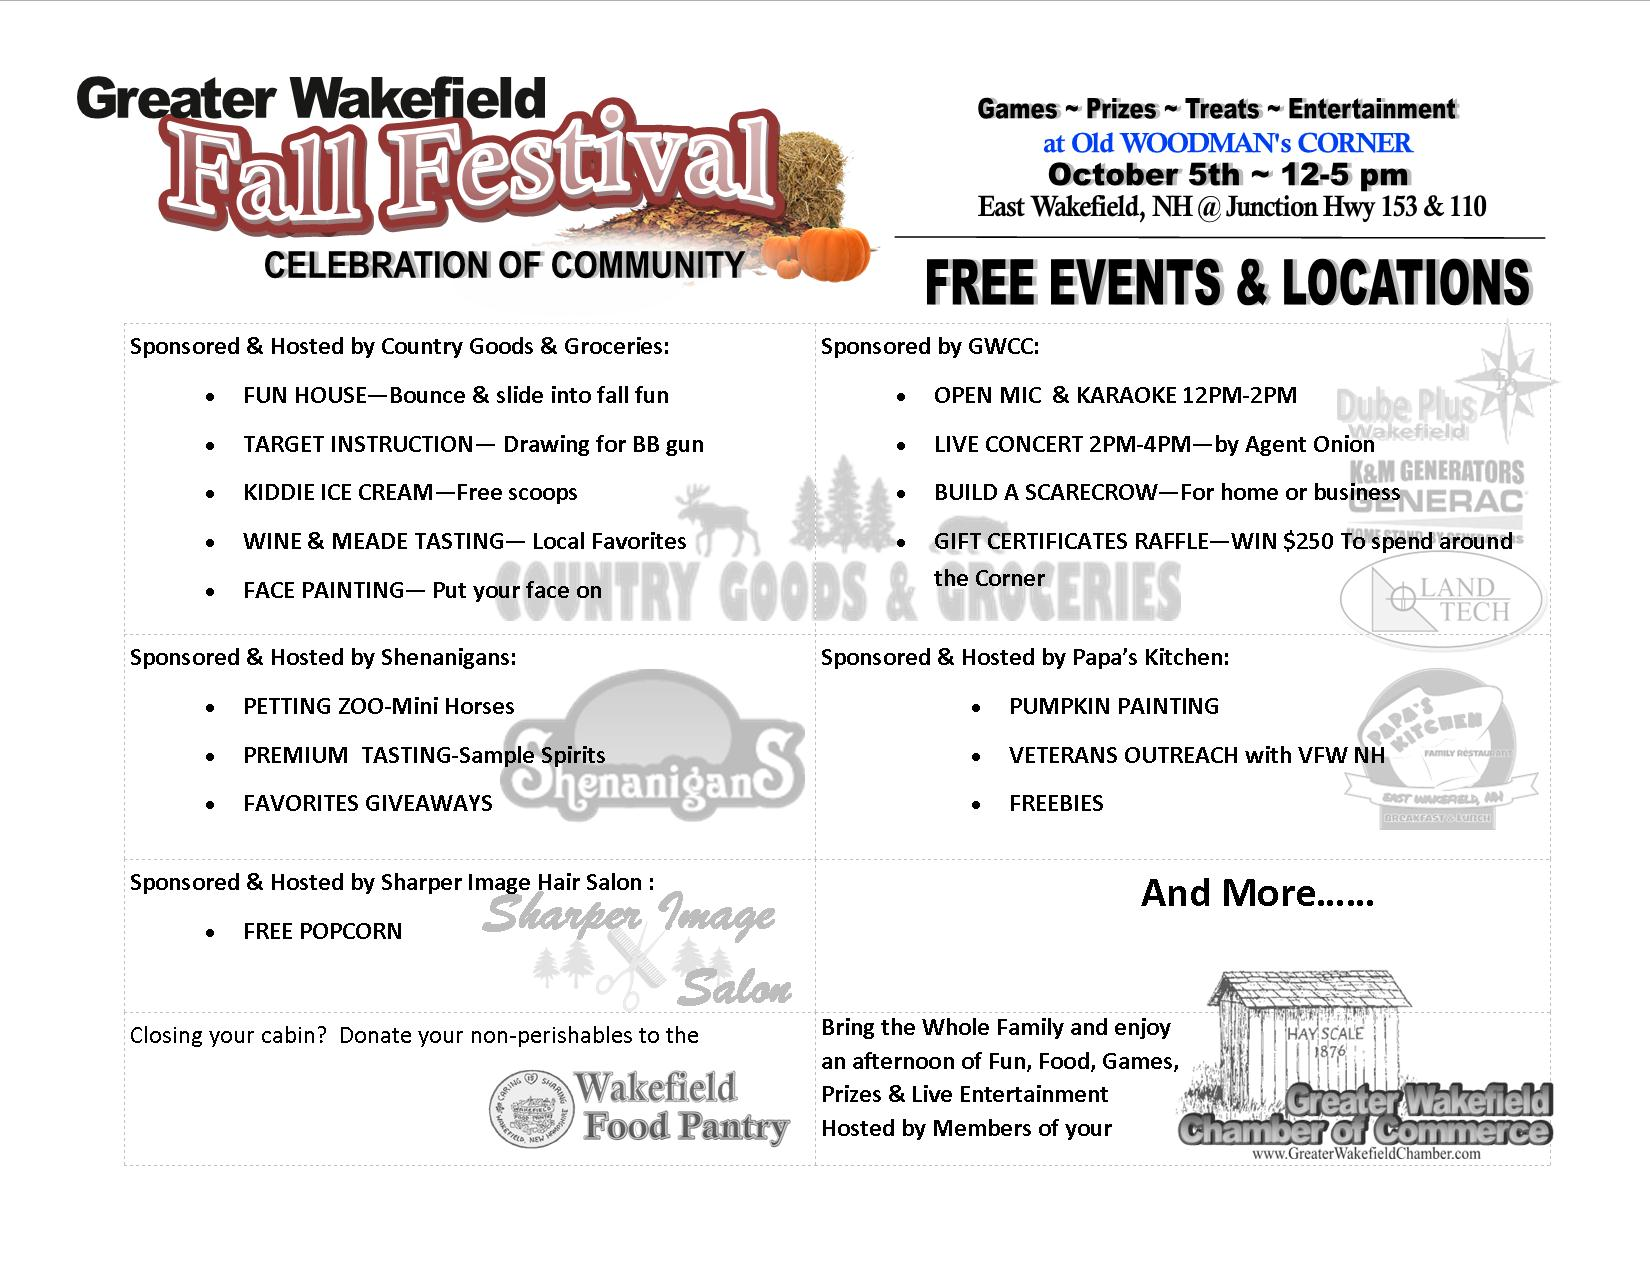 FALL FESTIVAL LIST OF EVENTS